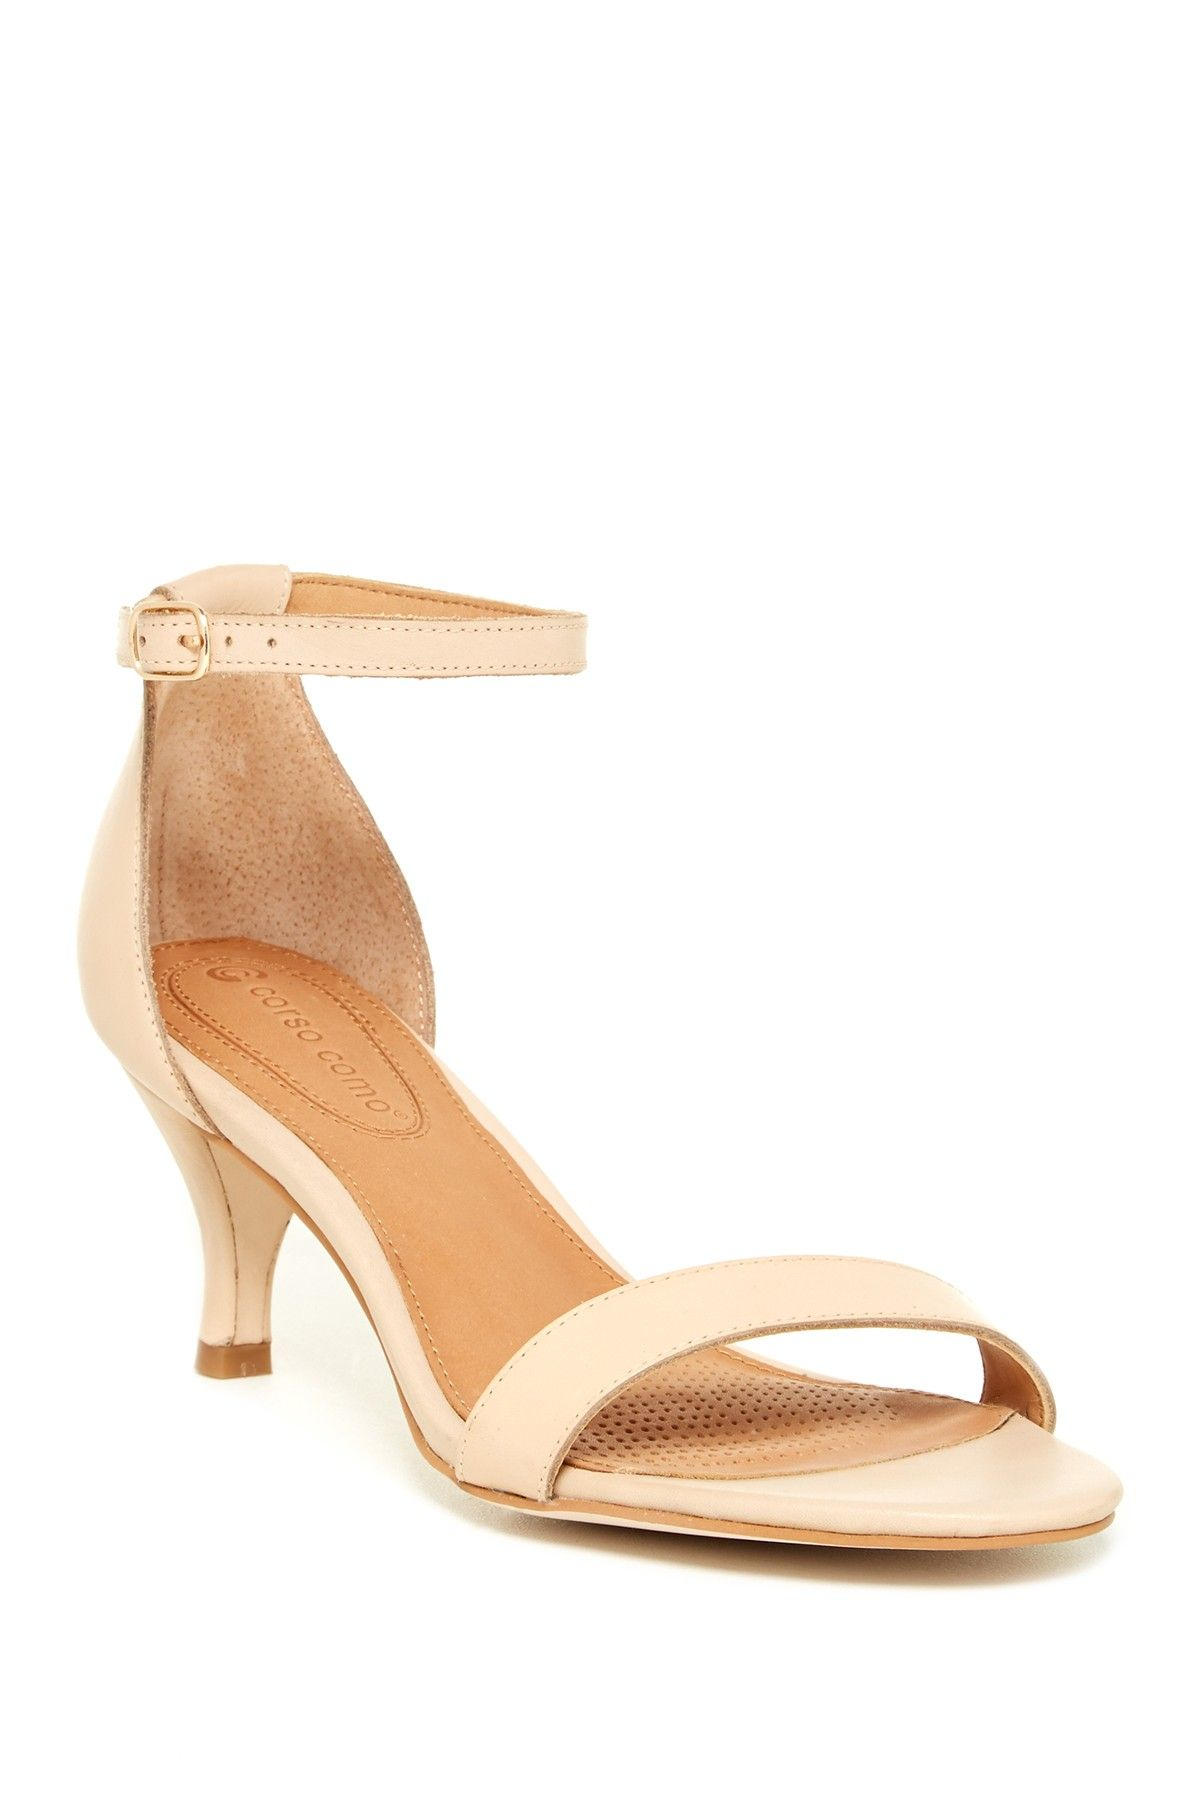 Love these Nude Ankle Strap Low Heel Sandals